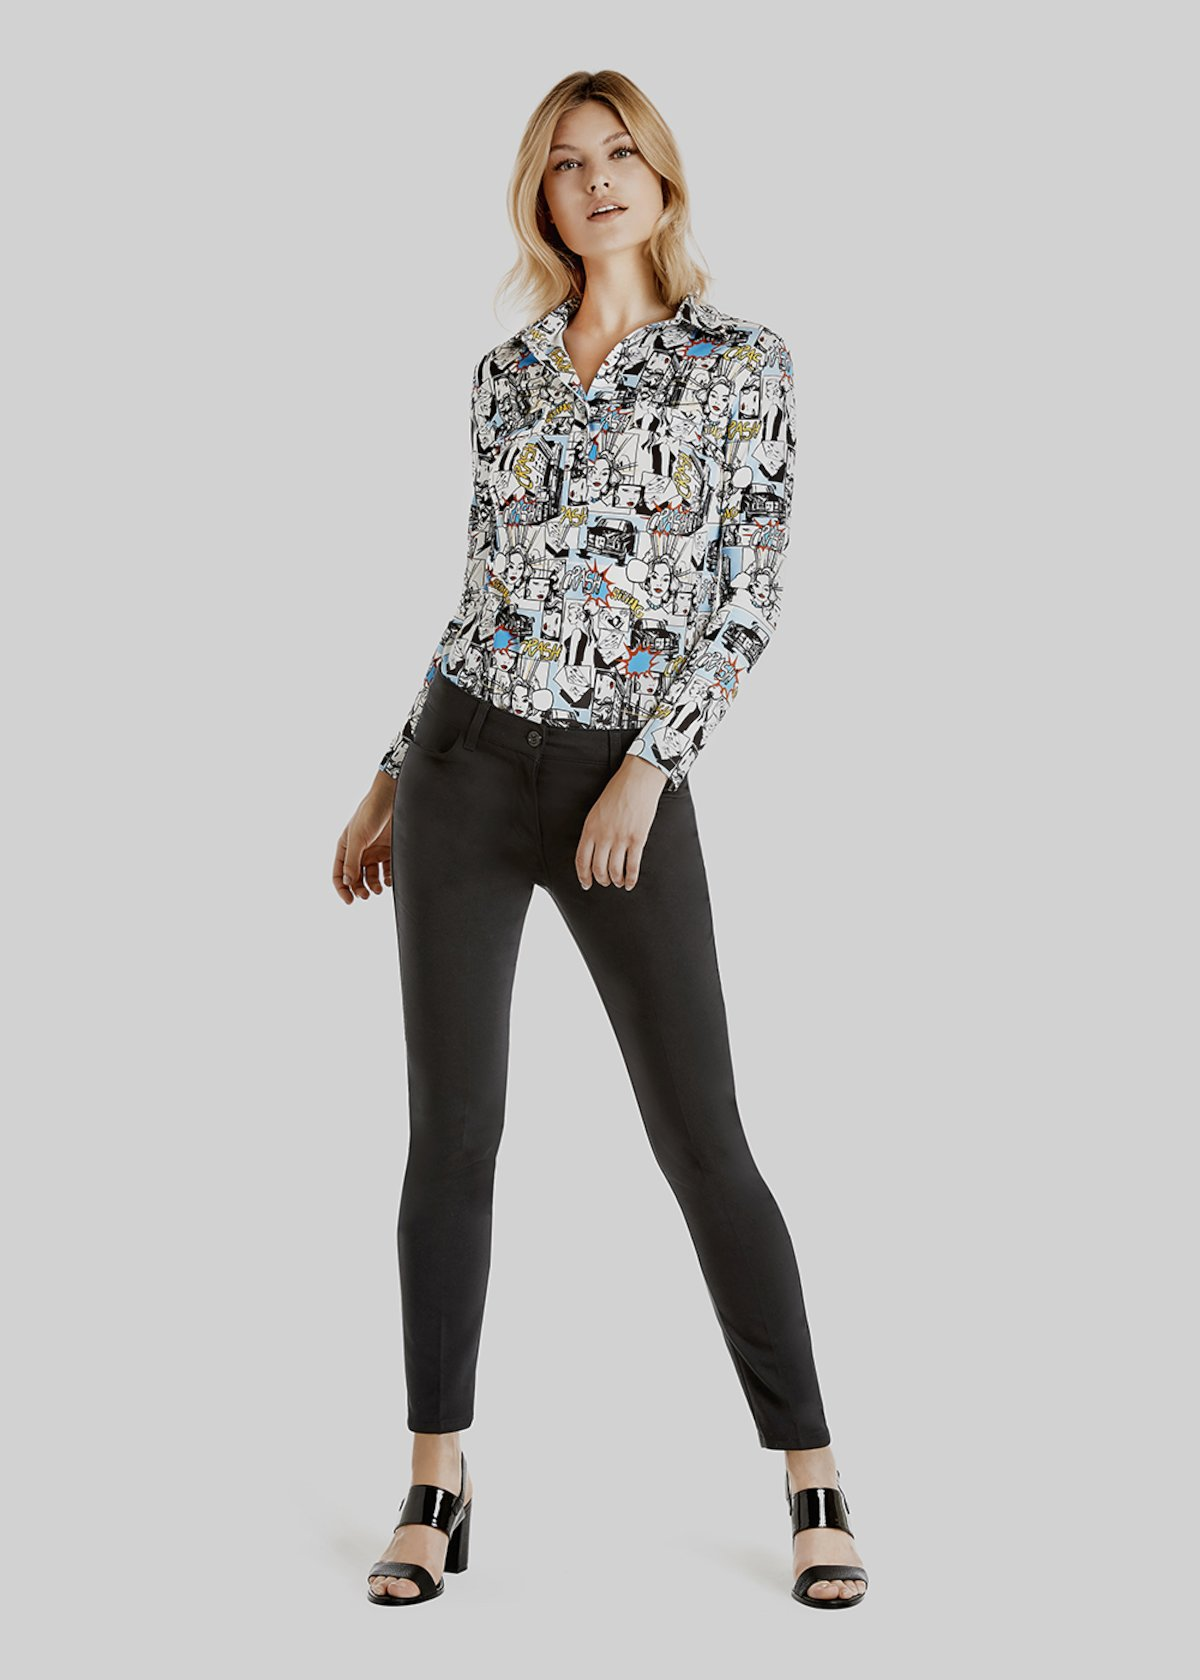 5 Pockets Kate trousers skinny fit